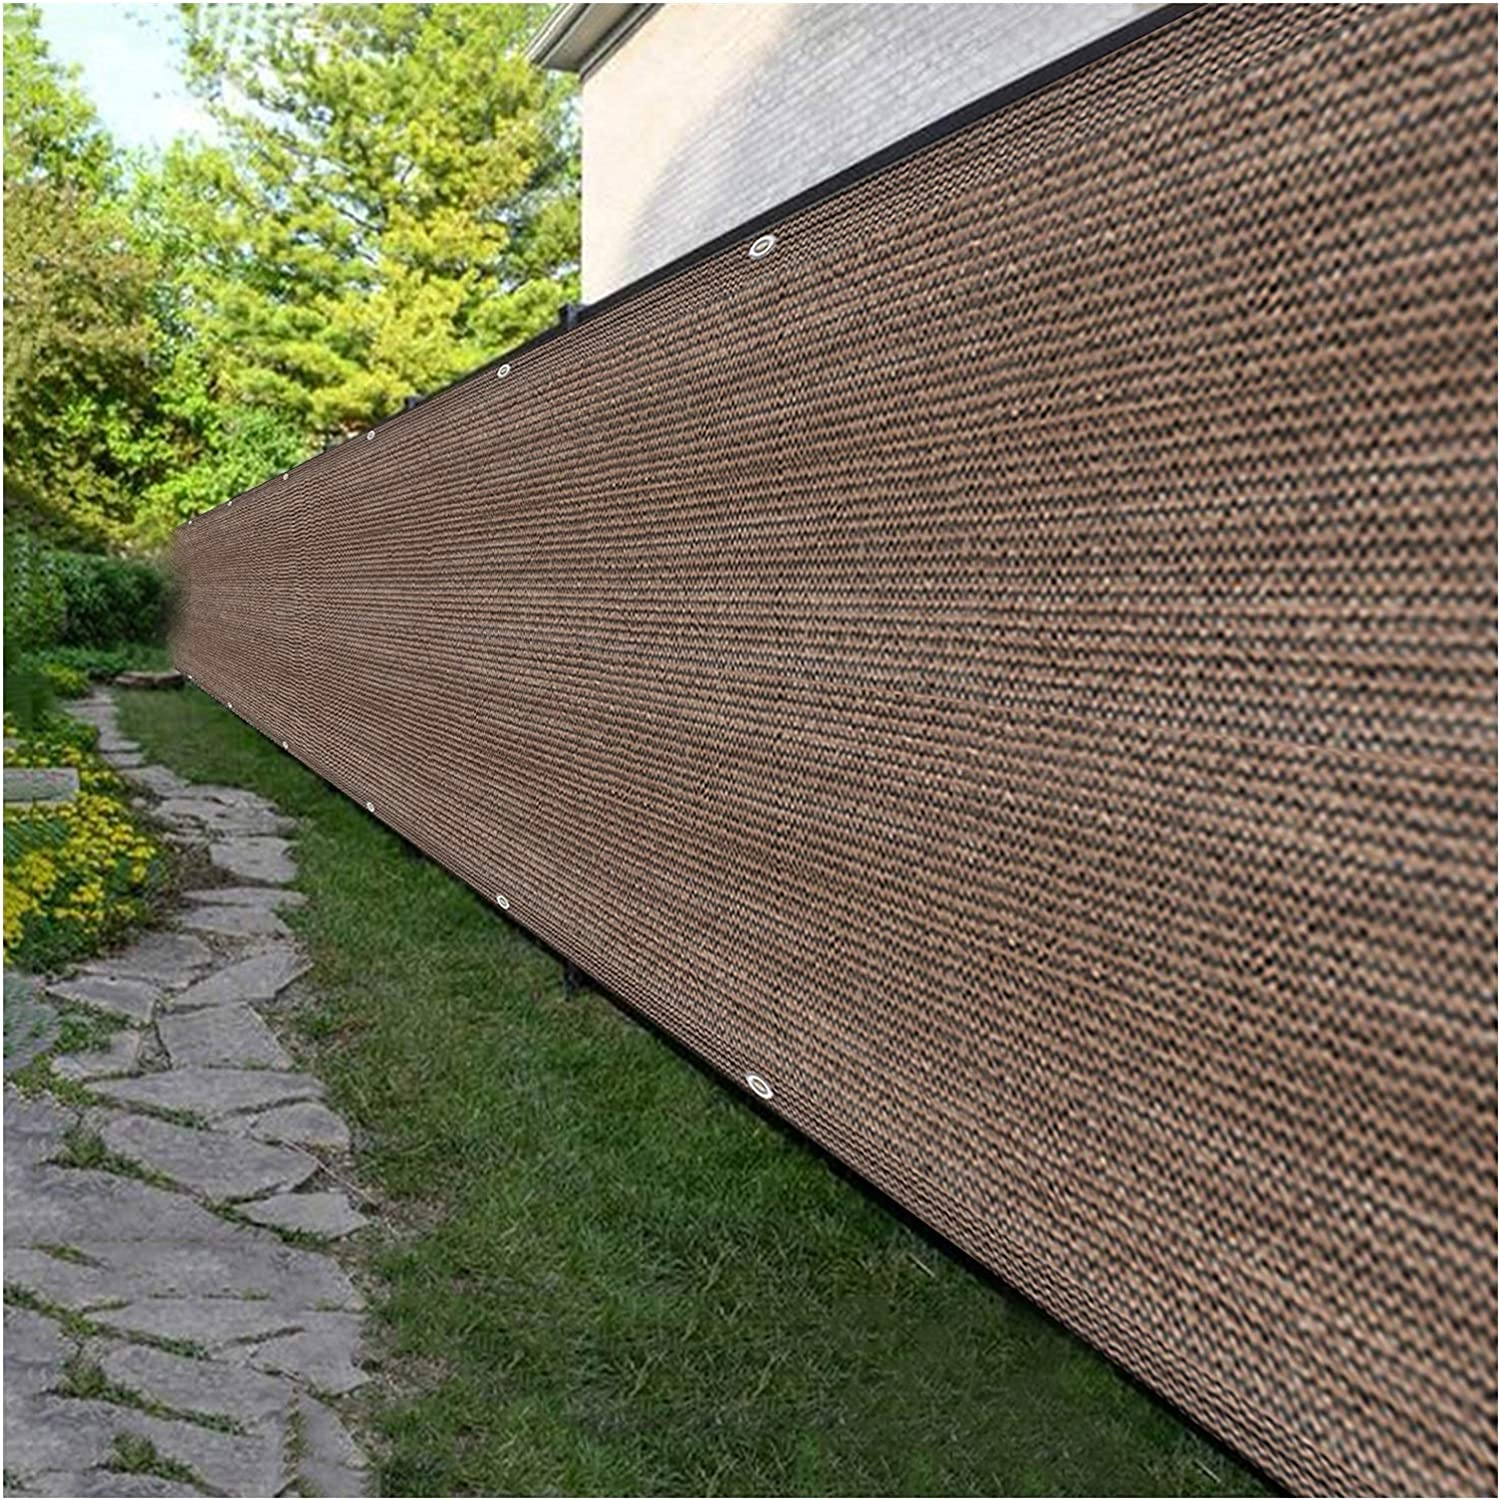 ALBN Fence Beauty products service Privacy Screen 90% Height Windsc Blockage 180cm 150cm